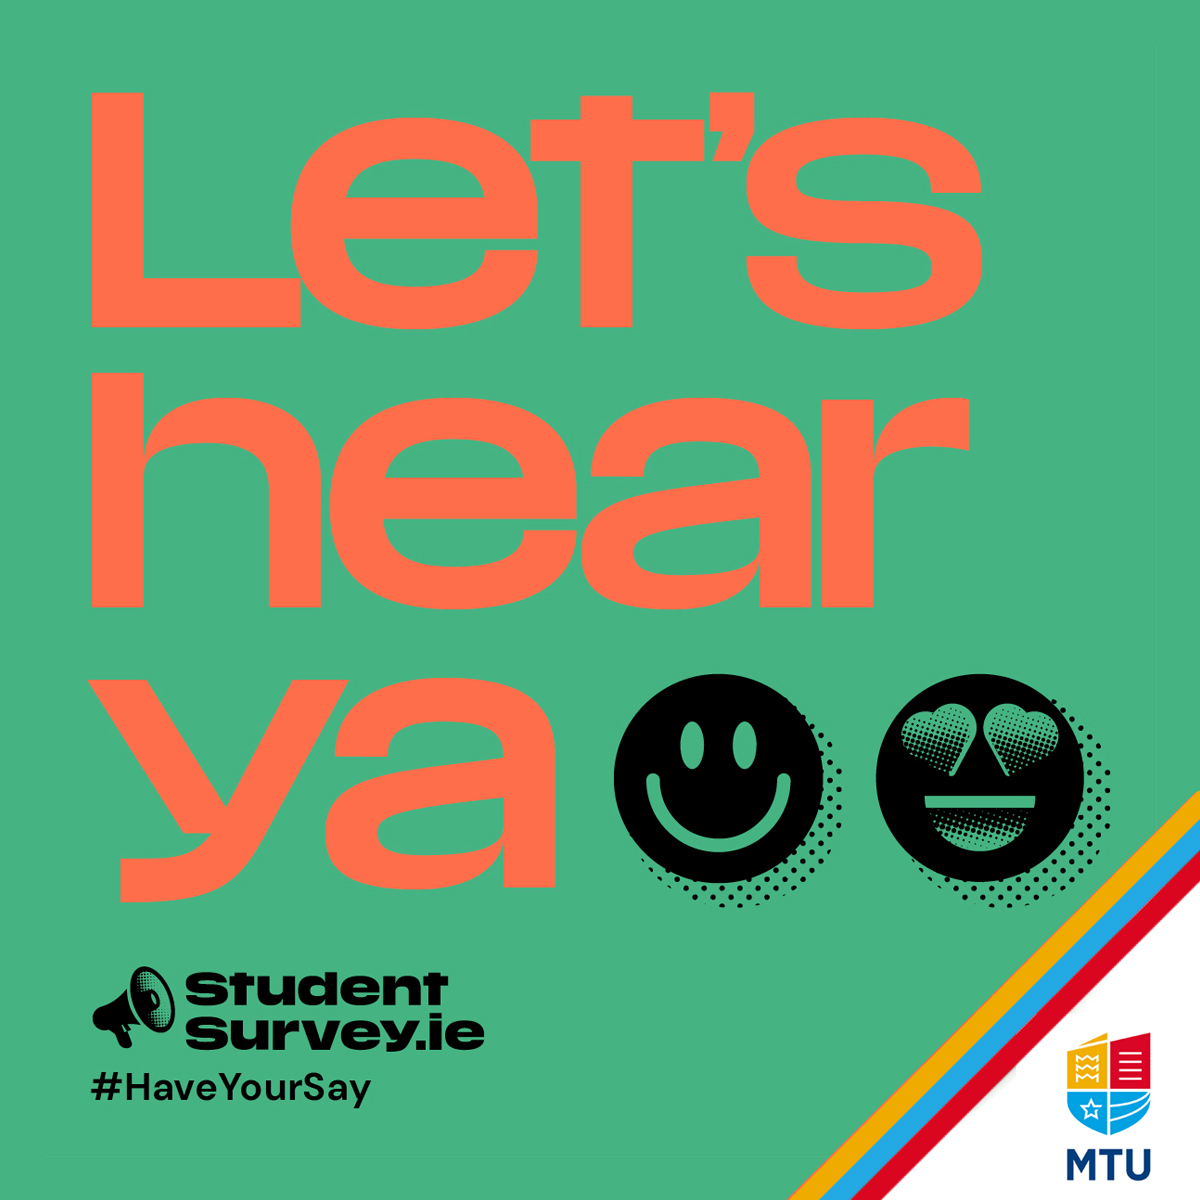 Have you completed the Student Survey Yet? Use your voice and influence the changes you want to see in your student experience. There's a chance to win some great prizes and vouchers. https://t.co/eBsqR3eGs6 https://t.co/1C80gLh1b2